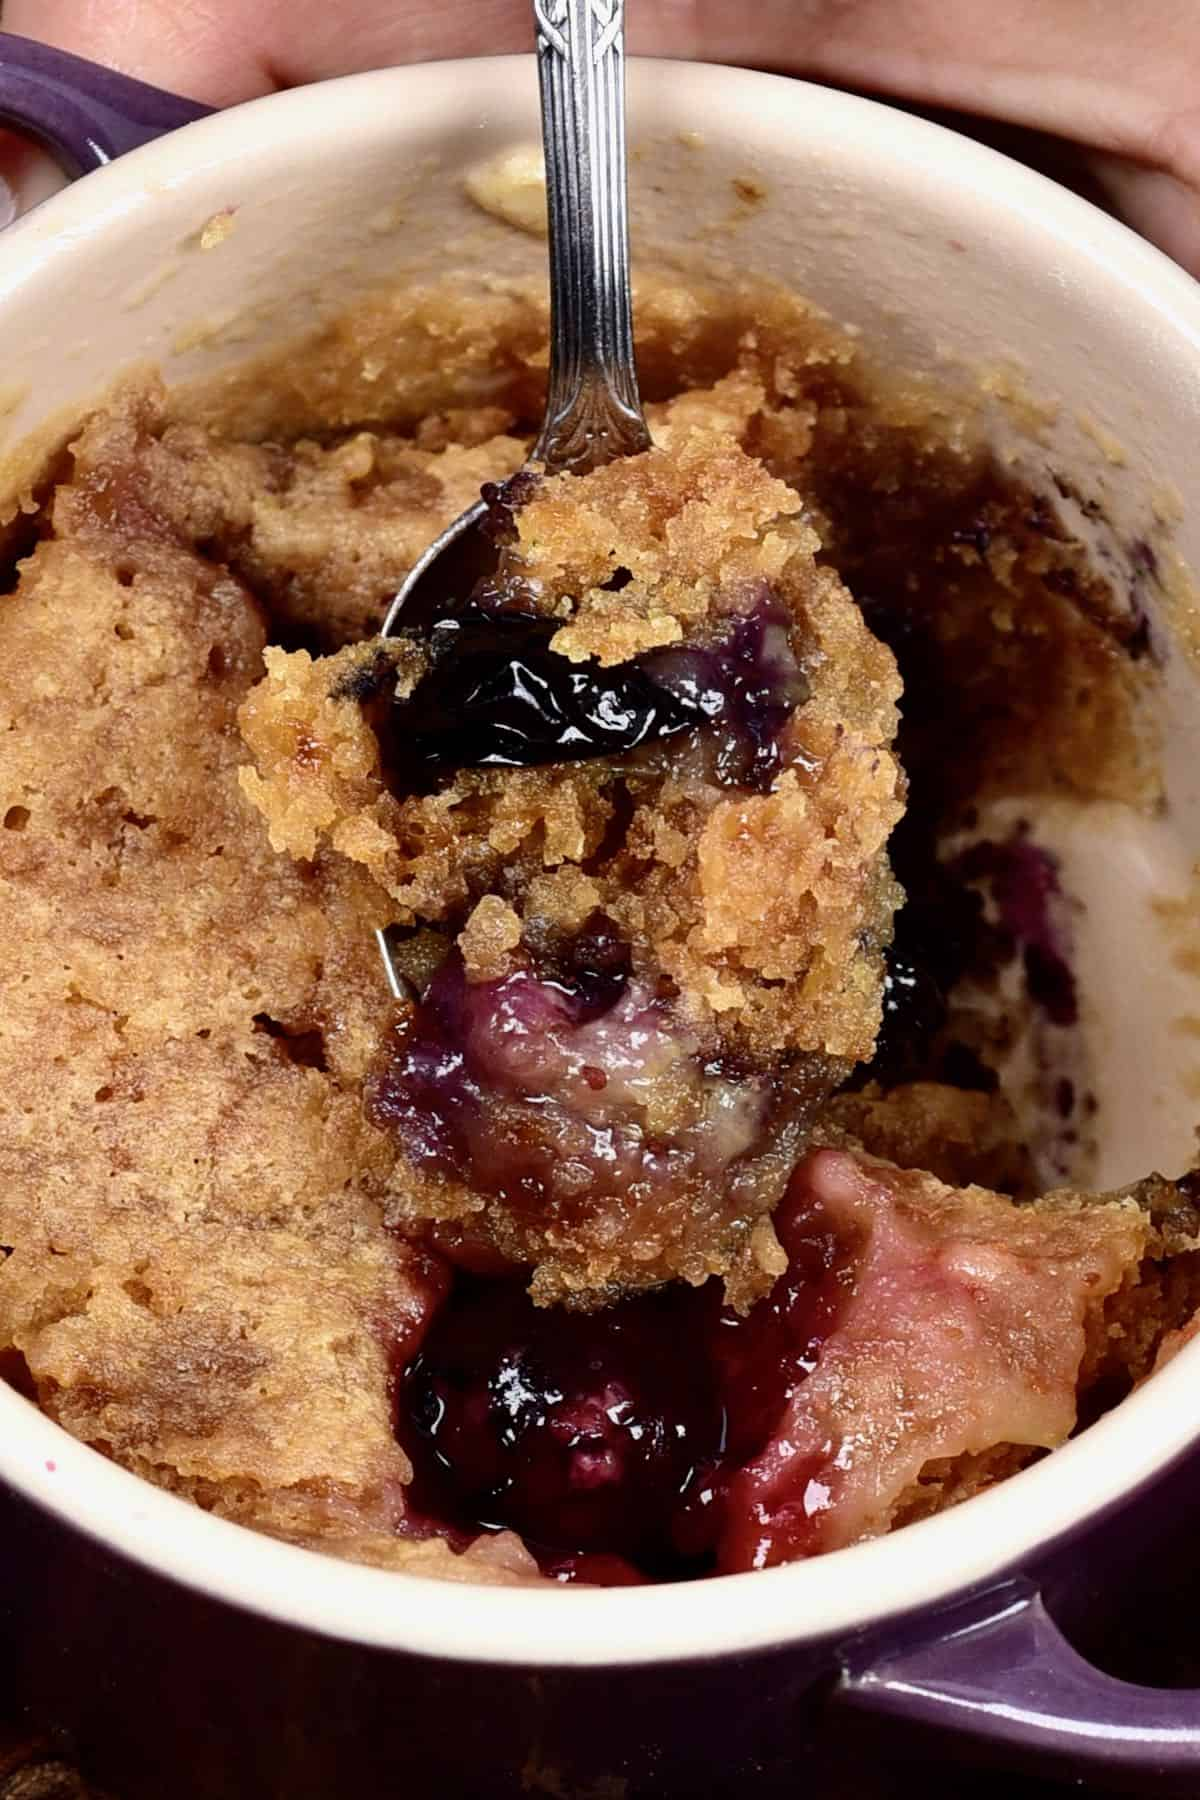 A close up of berry mug cake in a spoon